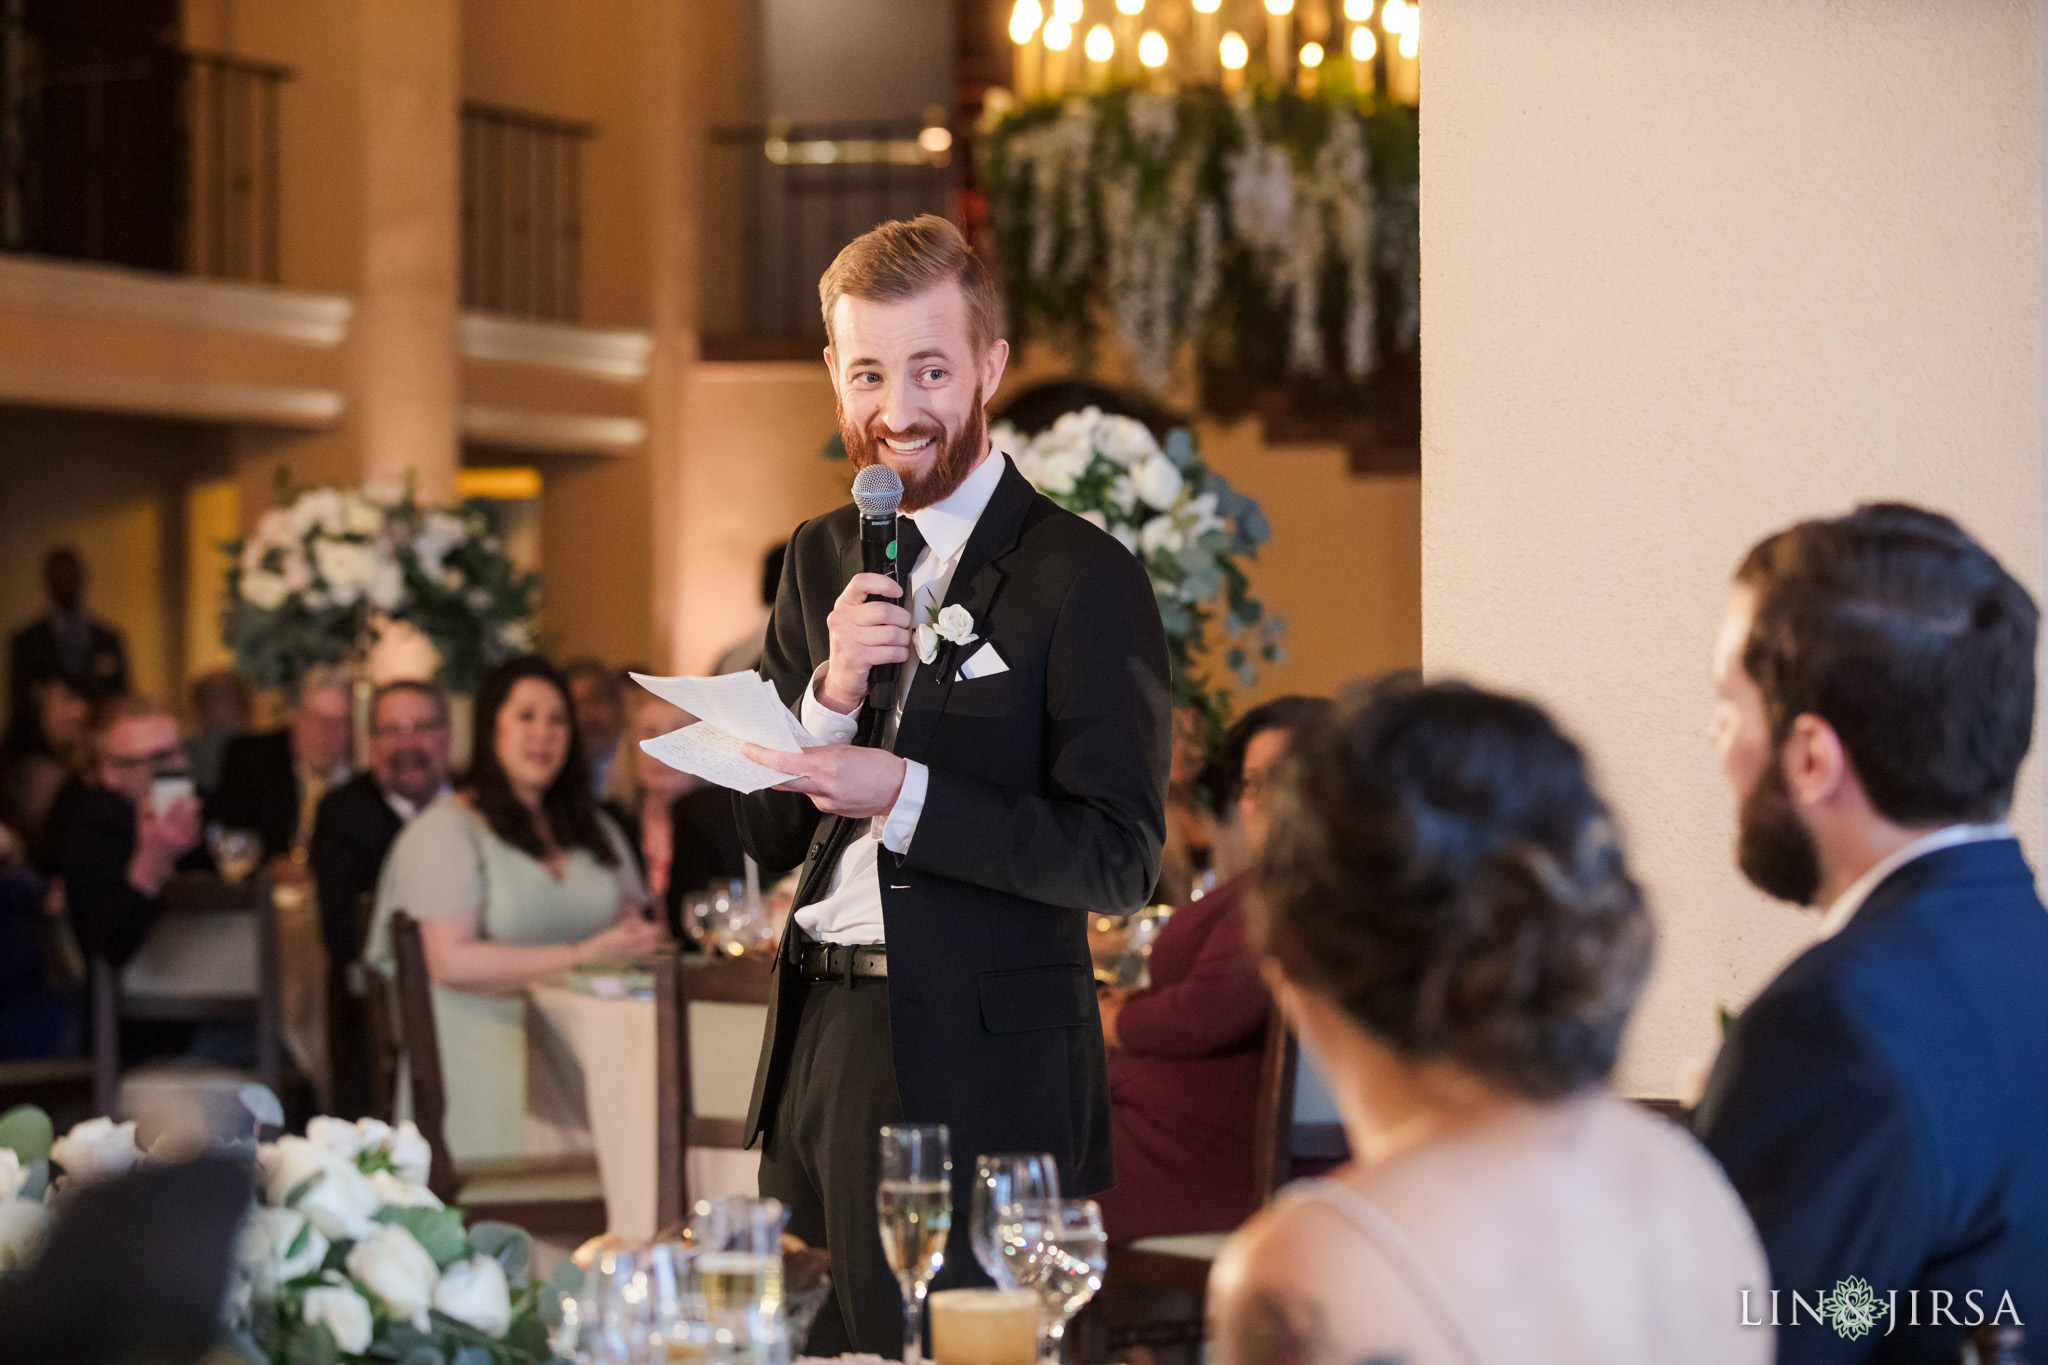 90 The Ebell Los Angeles Wedding Photography